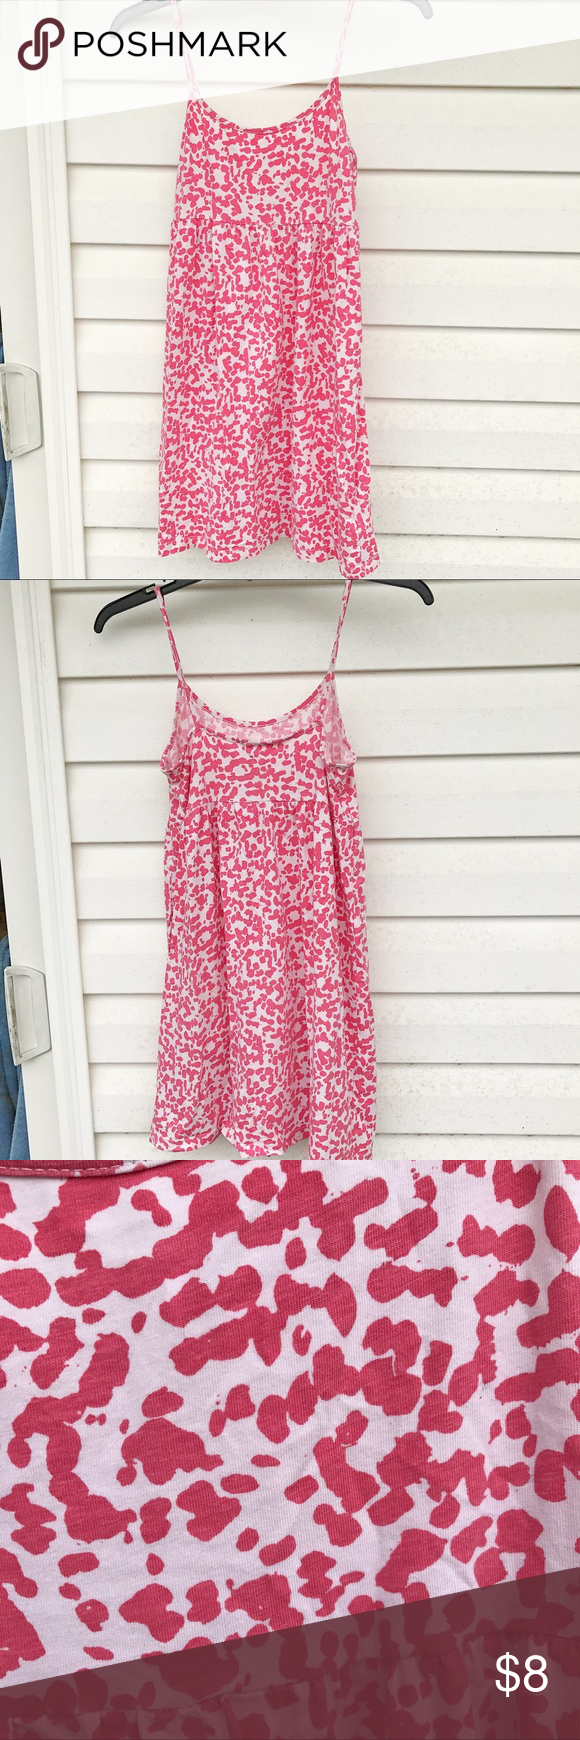 Cute Forever 21 short sundress Very lightweight and perfect for those hot days of summer! I usually wore it with some cute sandals and sometimes with a panama sunhat! Unique, paint-spatter pattern and spaghetti straps. Forever 21 Dresses Mini #shortsundress Cute Forever 21 short sundress Very lightweight and perfect for those hot days of summer! I usually wore it with some cute sandals and sometimes with a panama sunhat! Unique, paint-spatter pattern and spaghetti straps. Forever 21 Dresses Mini #shortsundress